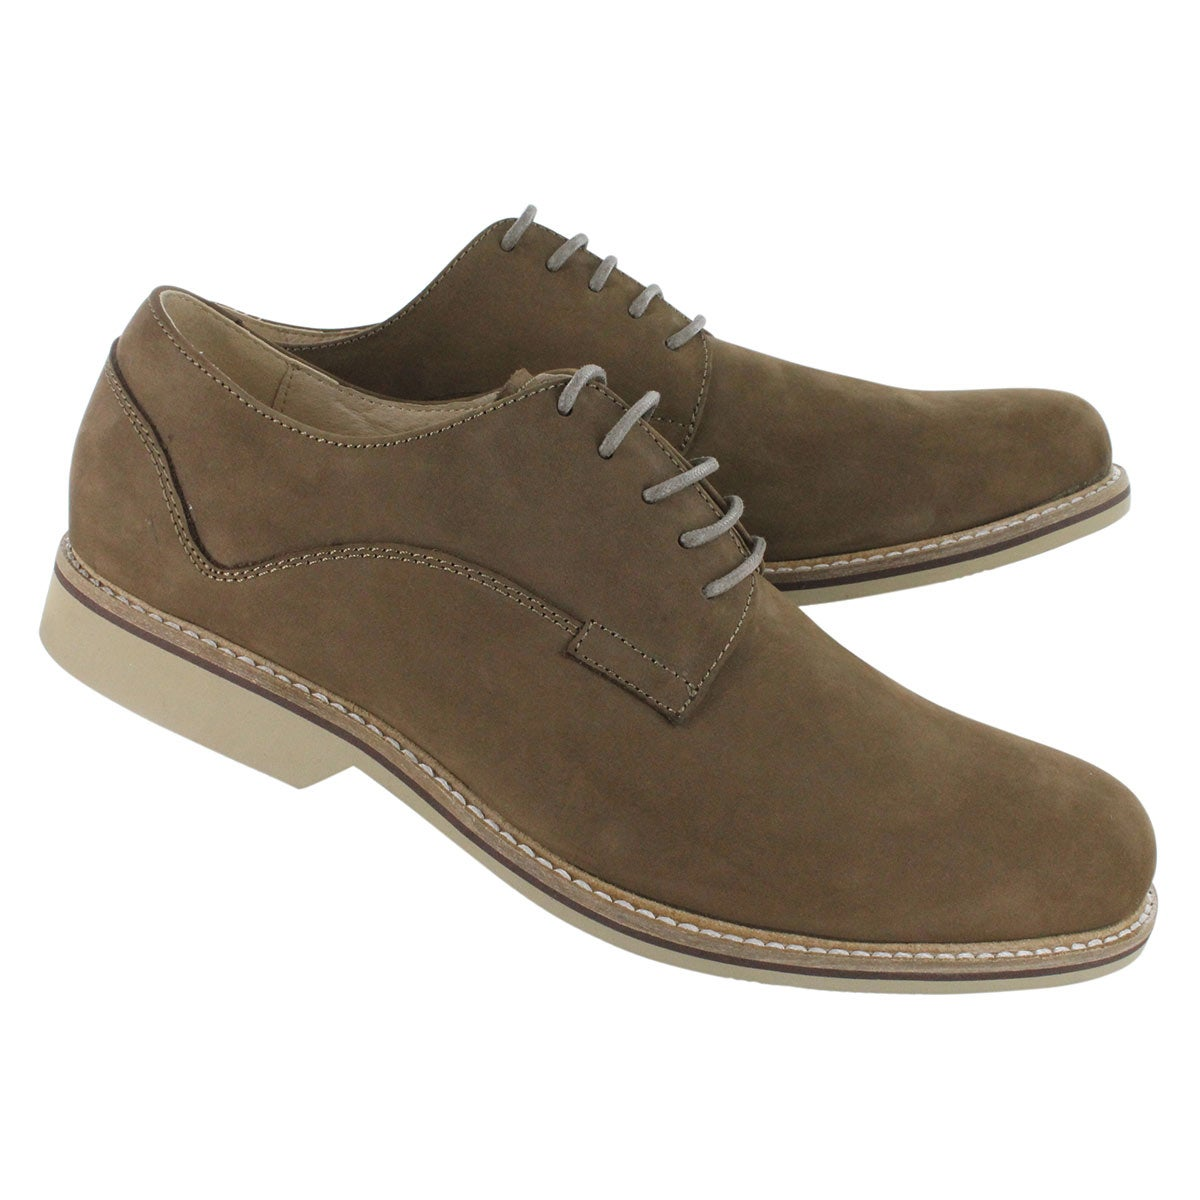 Mns Jax taupe nubuck oxford dress shoe